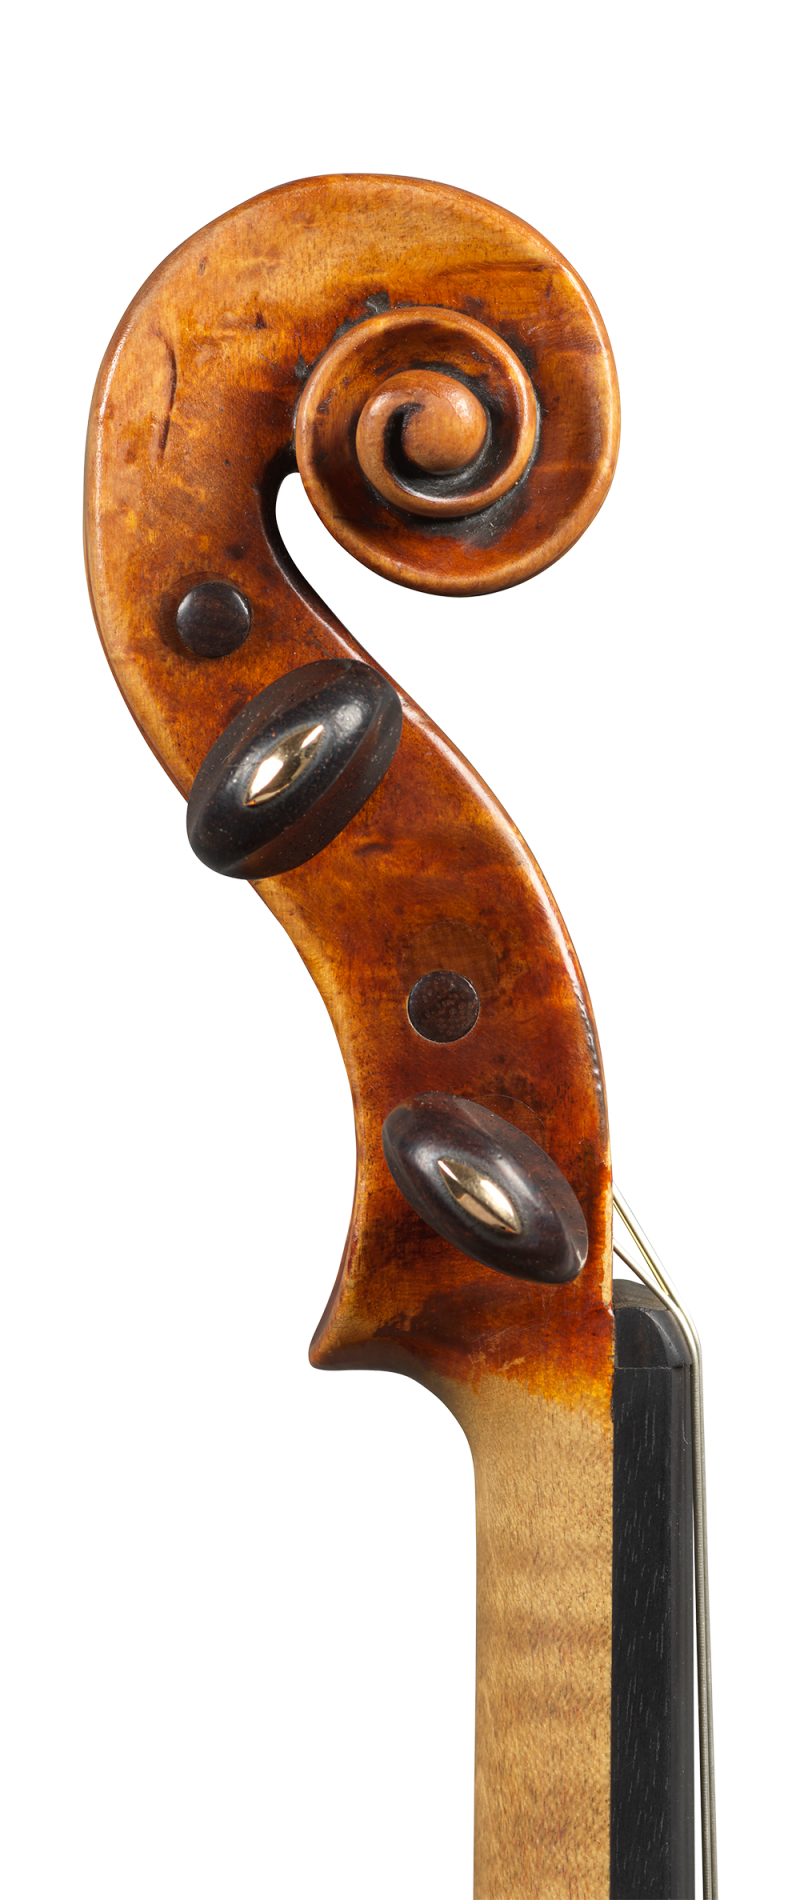 Scroll of a violin by Mathias Albani, circa 1710. Albani was an inspiration for makers in his region for generations to come and the sound of this violin is colourful and powerful yet very versatile.